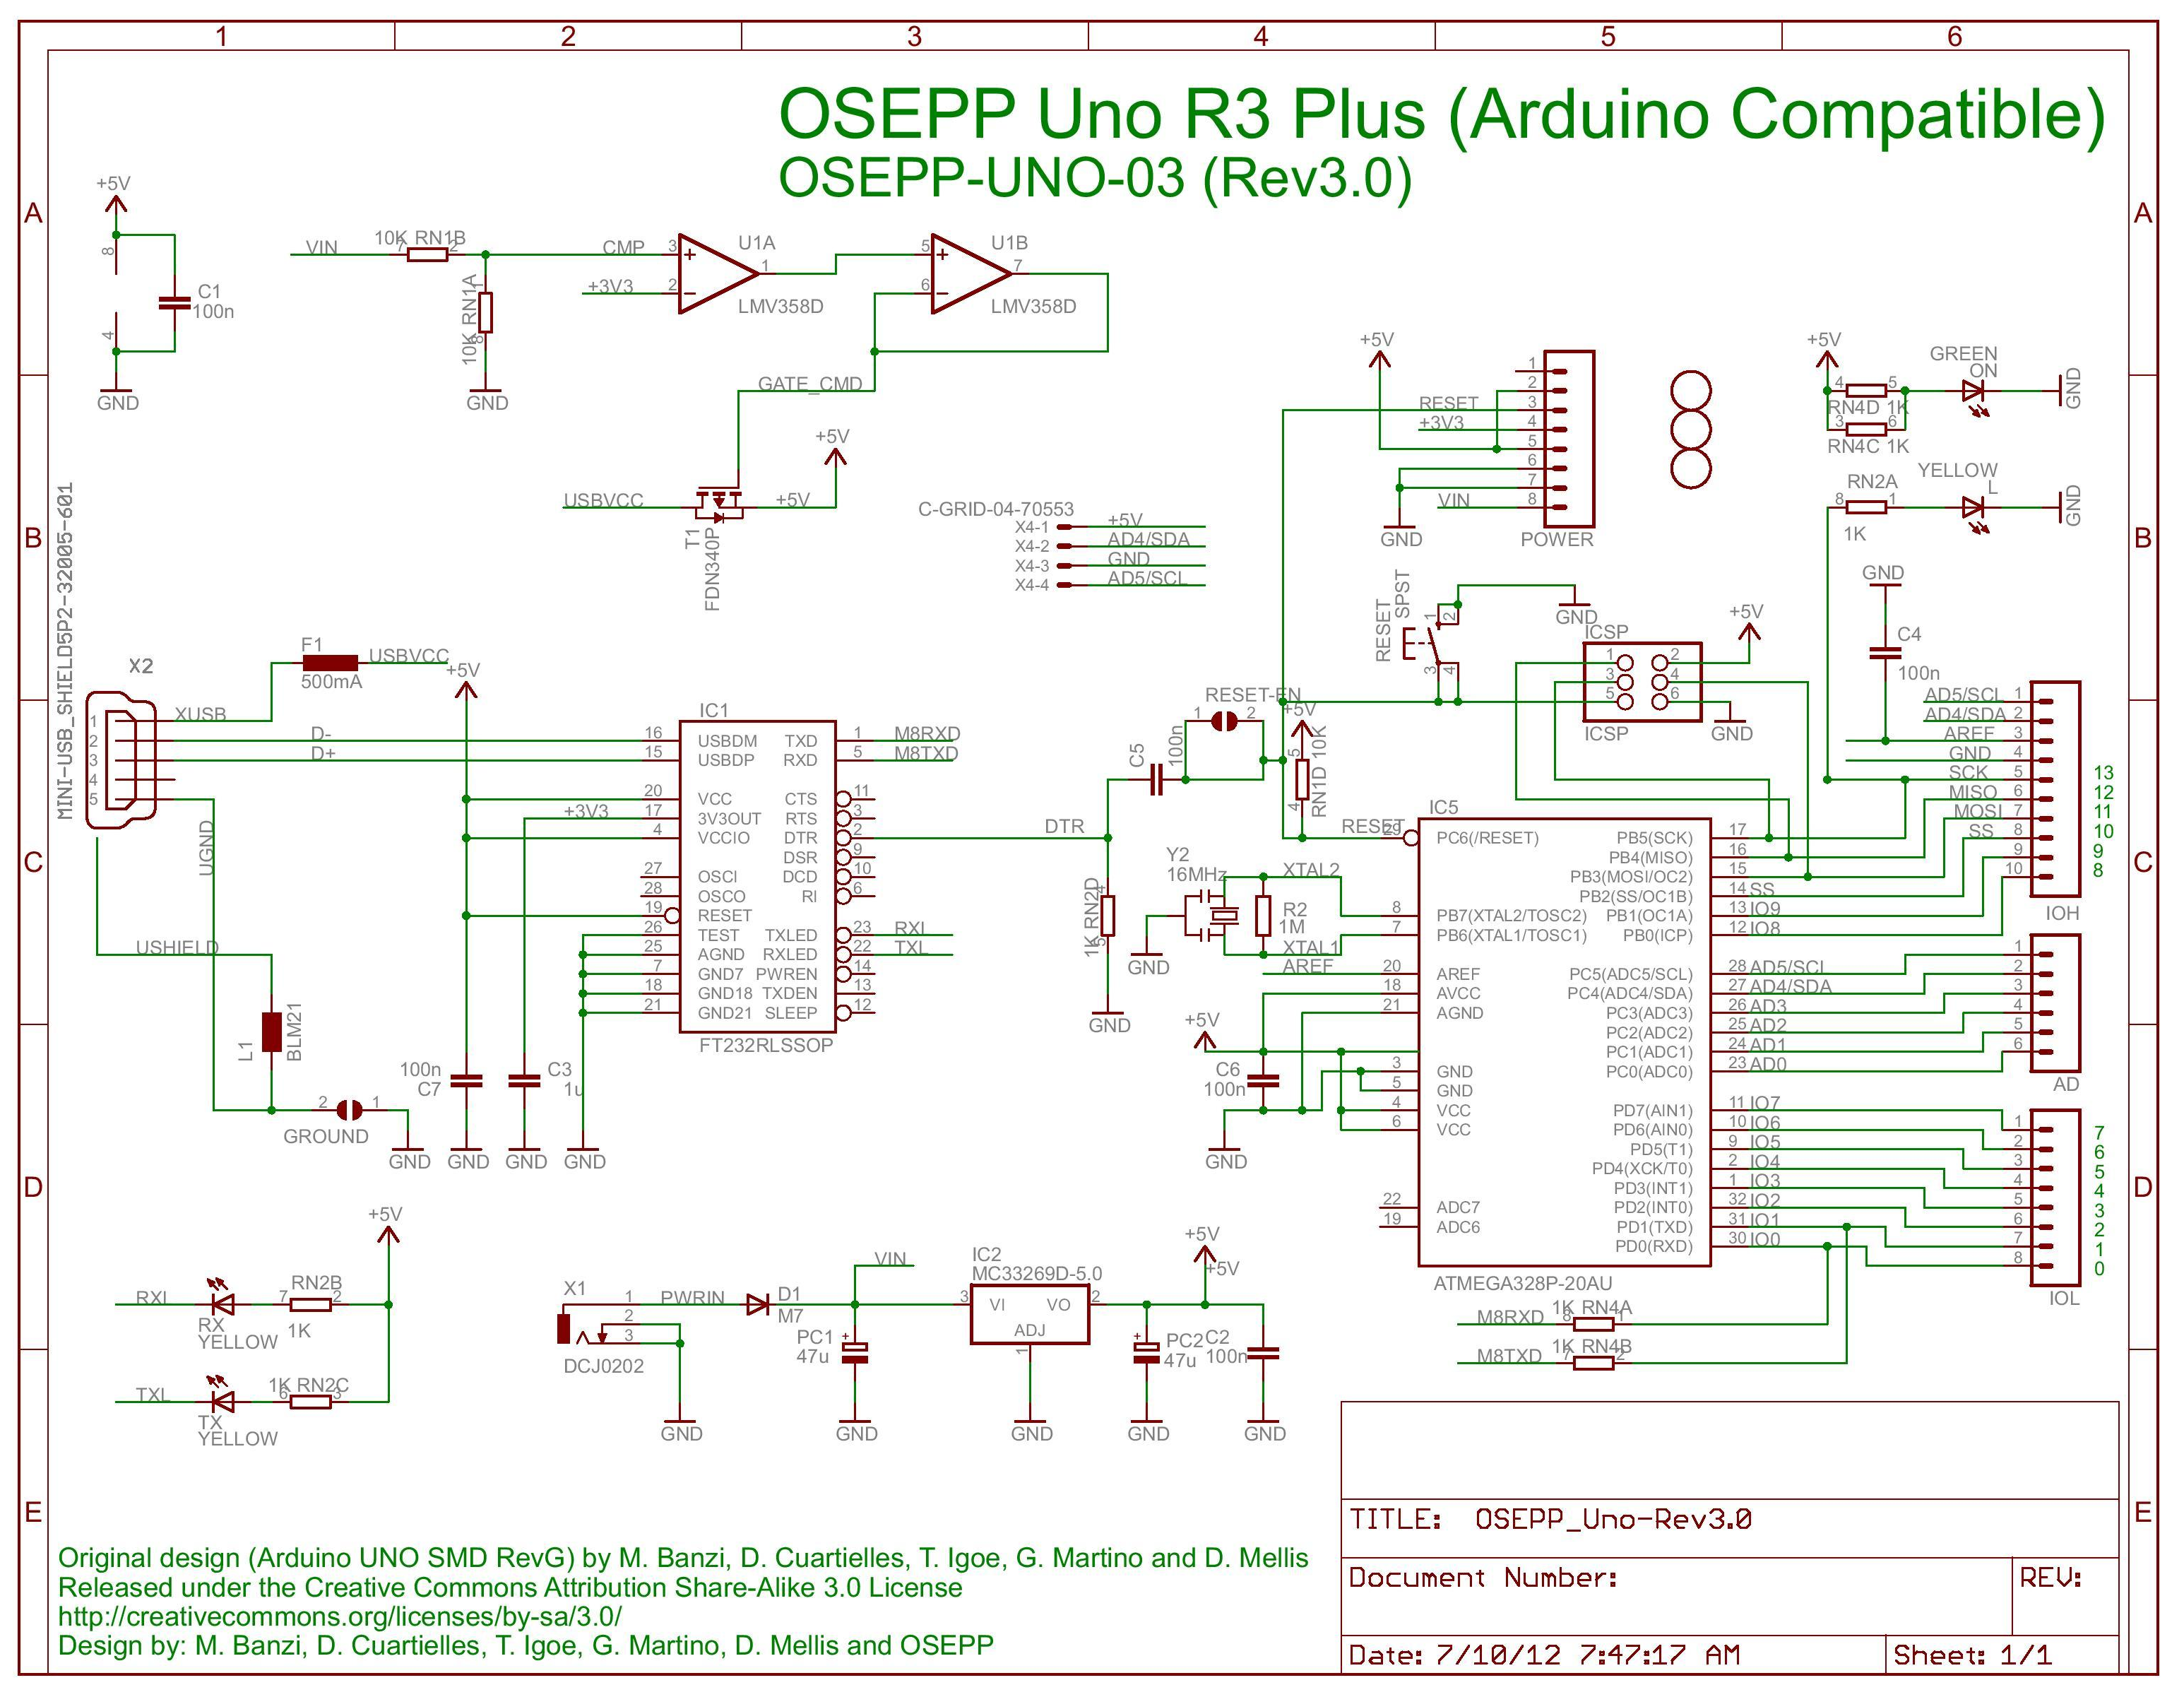 DIAGRAM] Arduino Uno Circuit Diagram Maker FULL Version HD Quality Diagram  Maker - FEYNMANDIAGRAMS.GABRIELEROSSI.ITGabriele Rossi